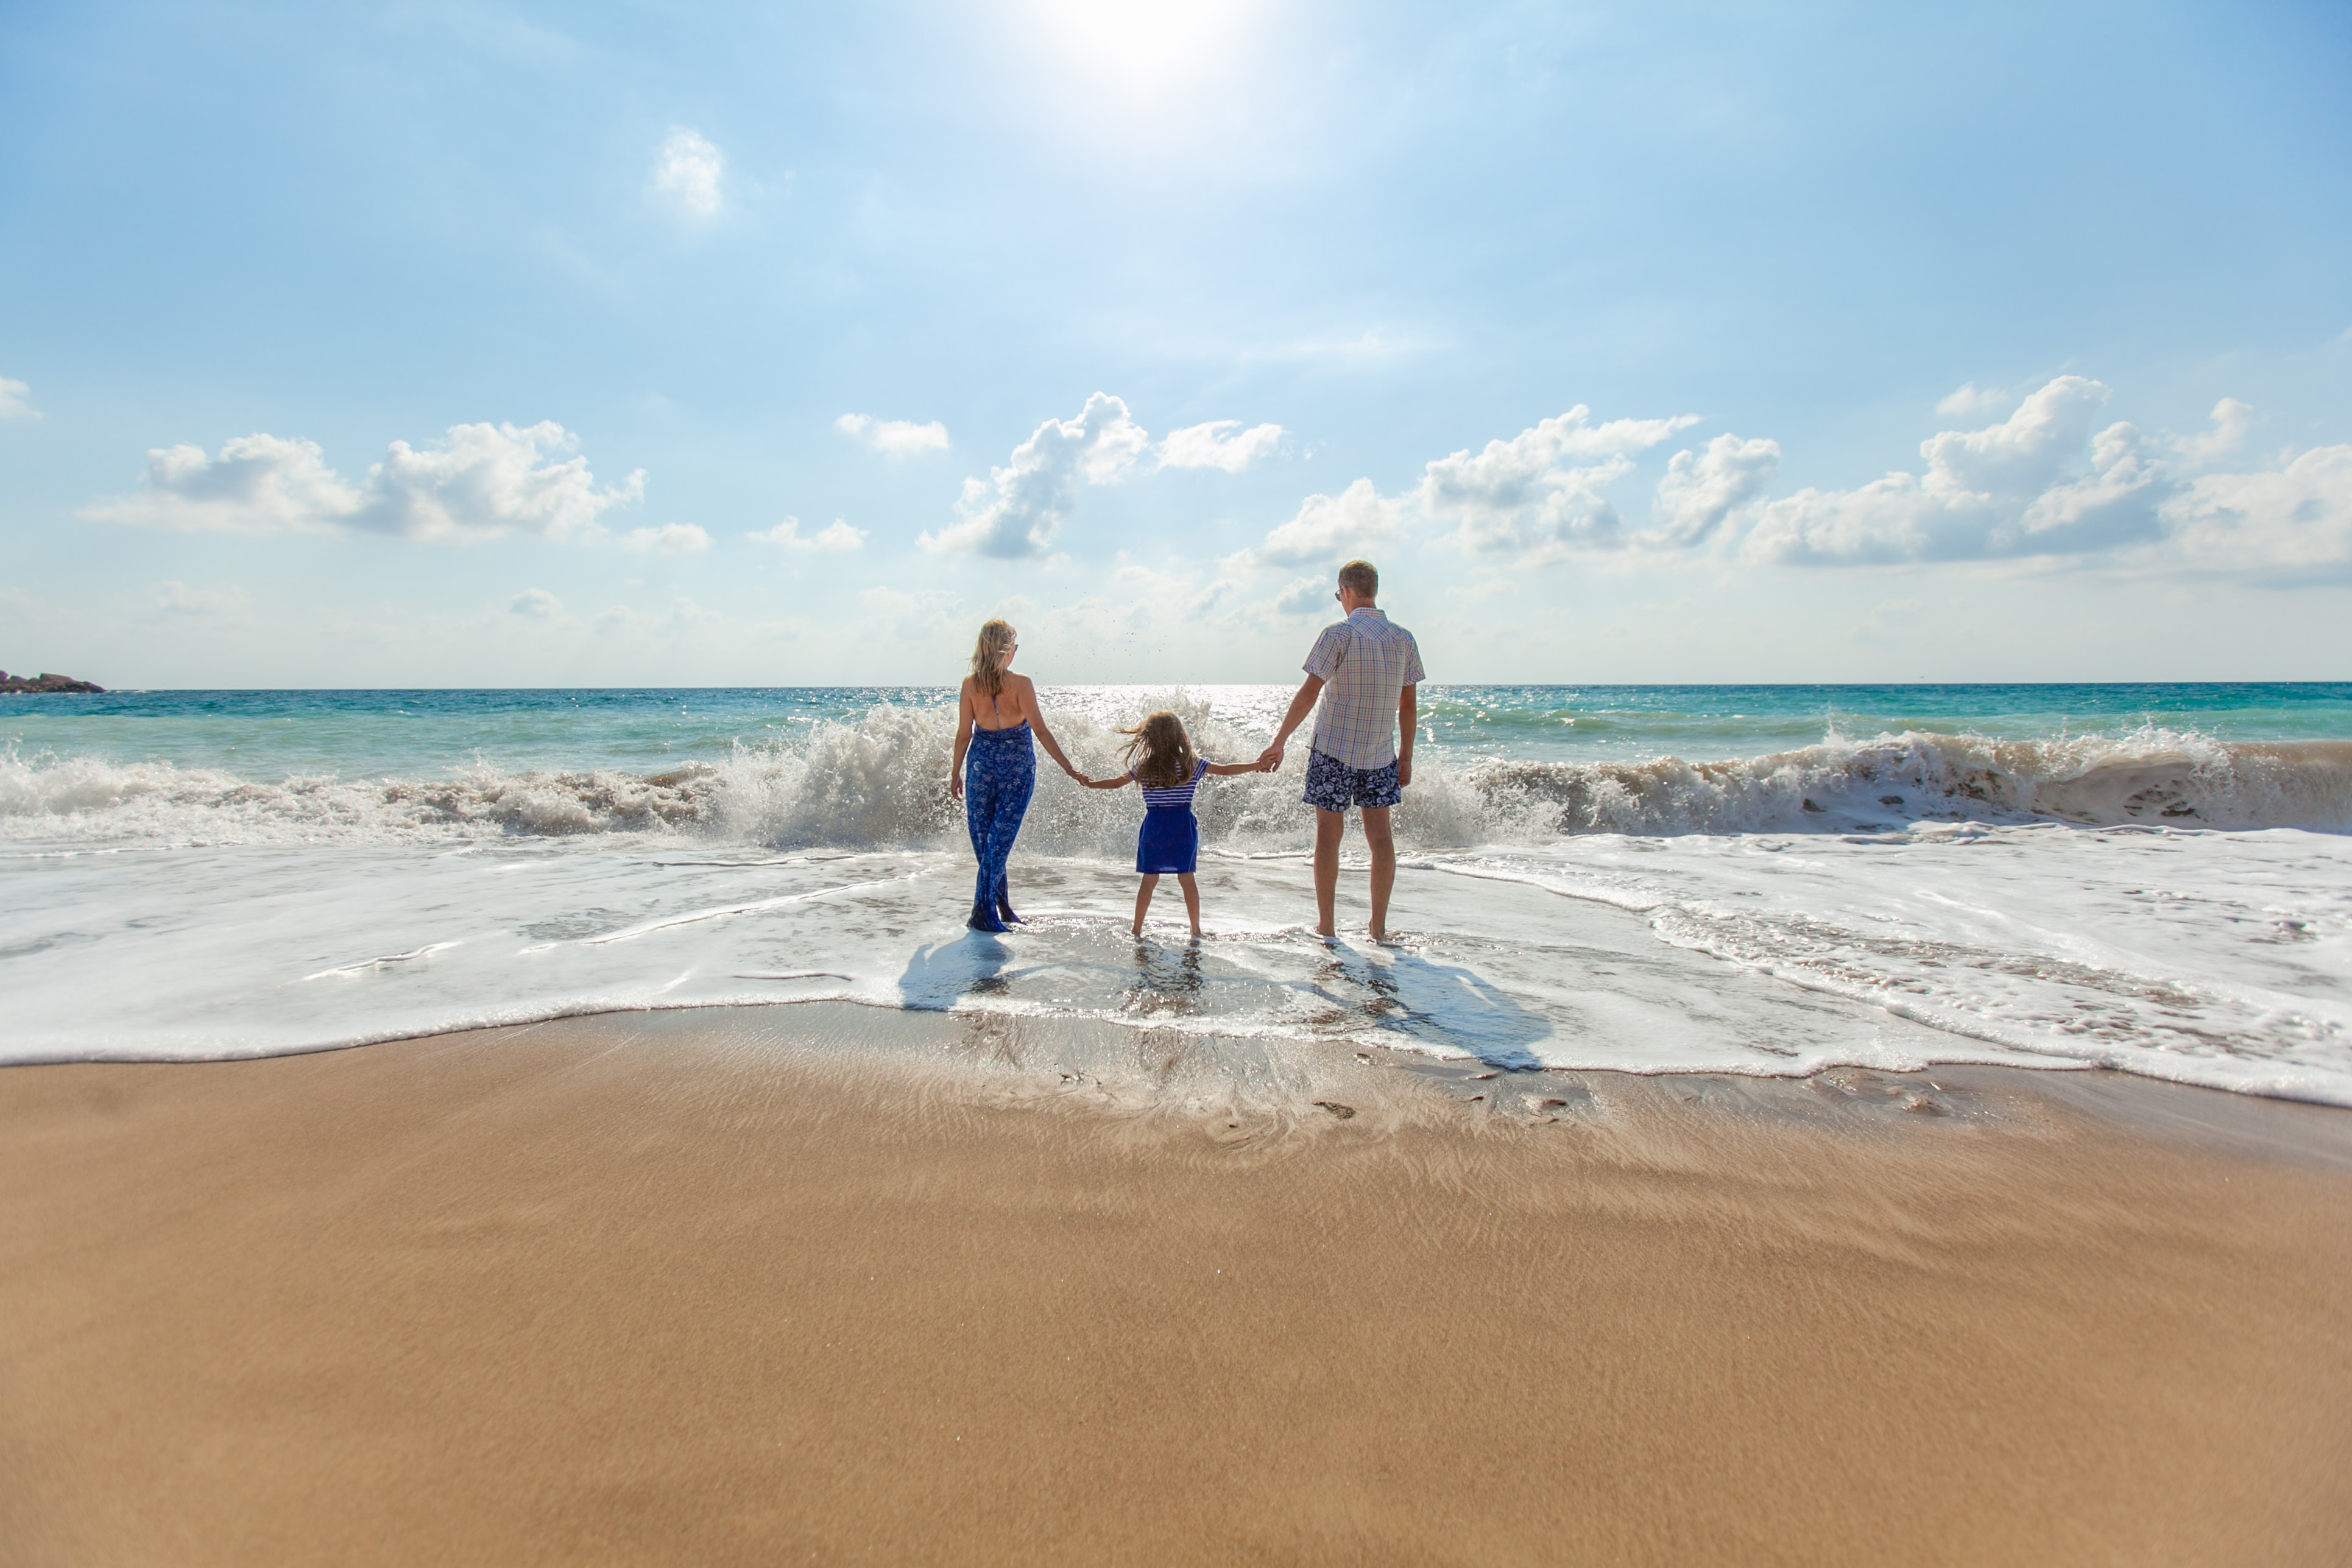 Mother, daughter and father holding hands in a line on a beach during the daytime.